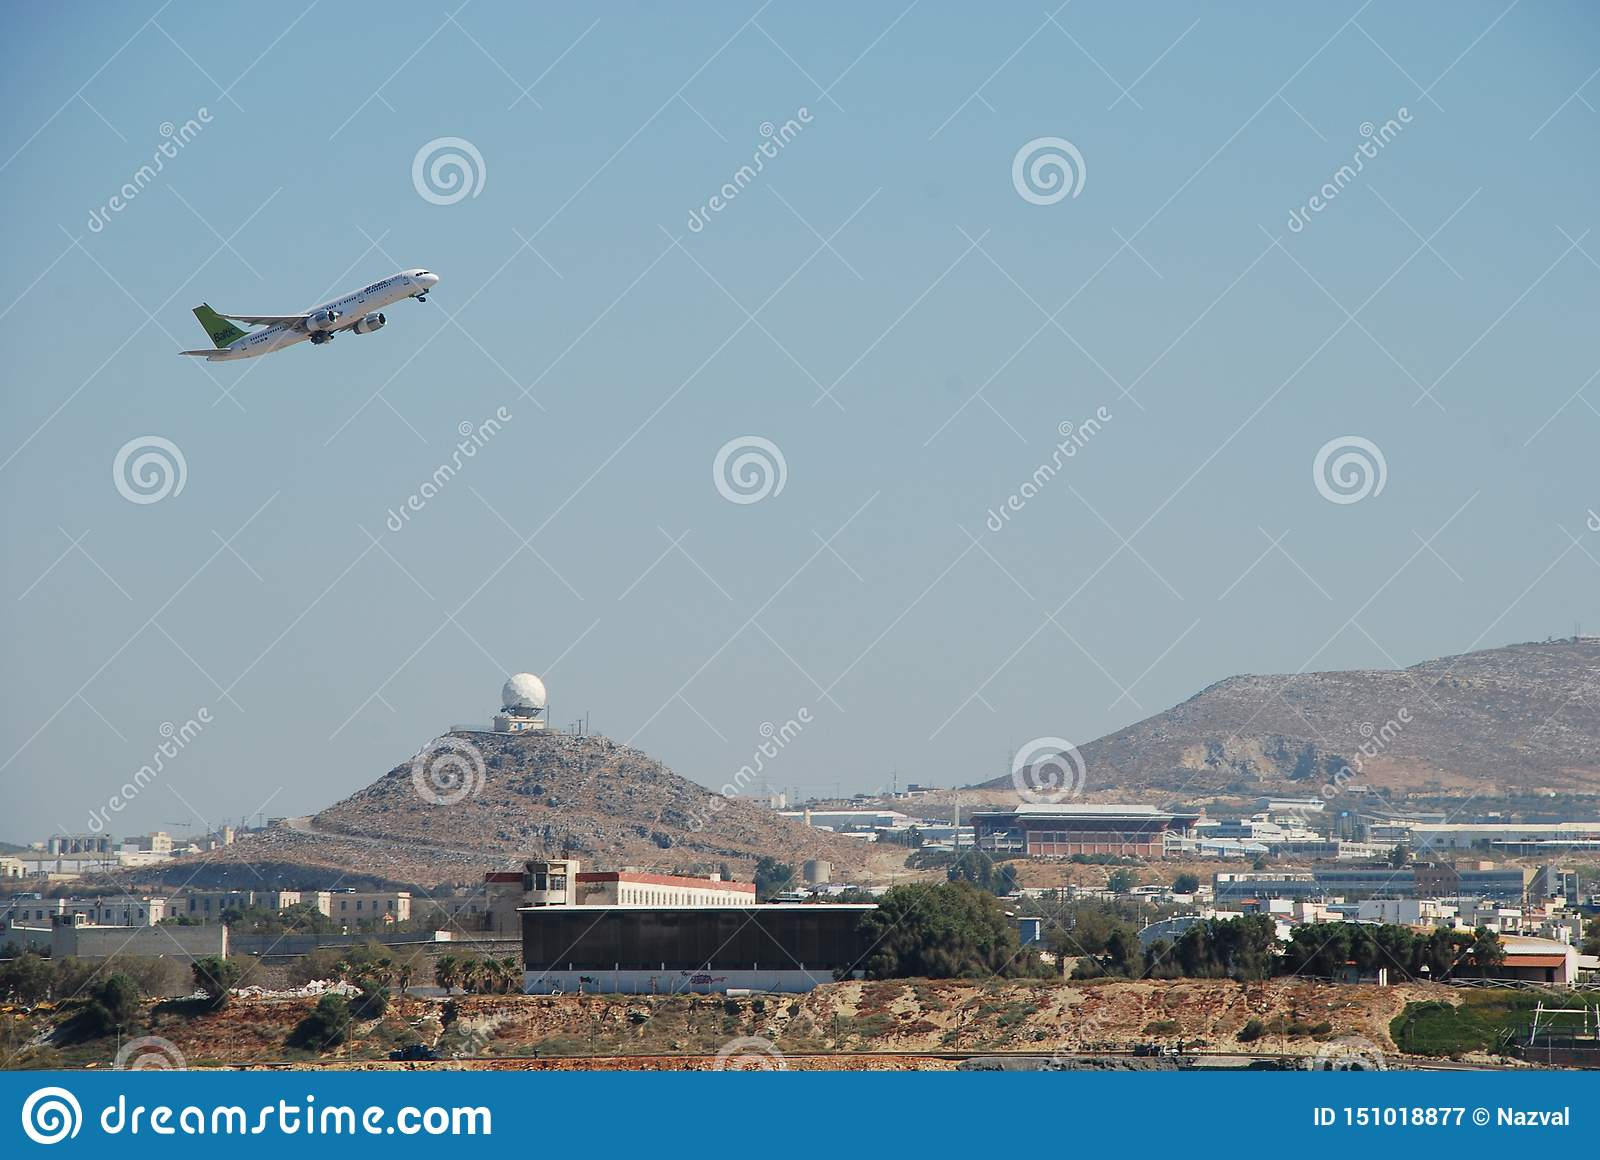 Taking off the plane from the resort airport in the city of Heraklion in Crete